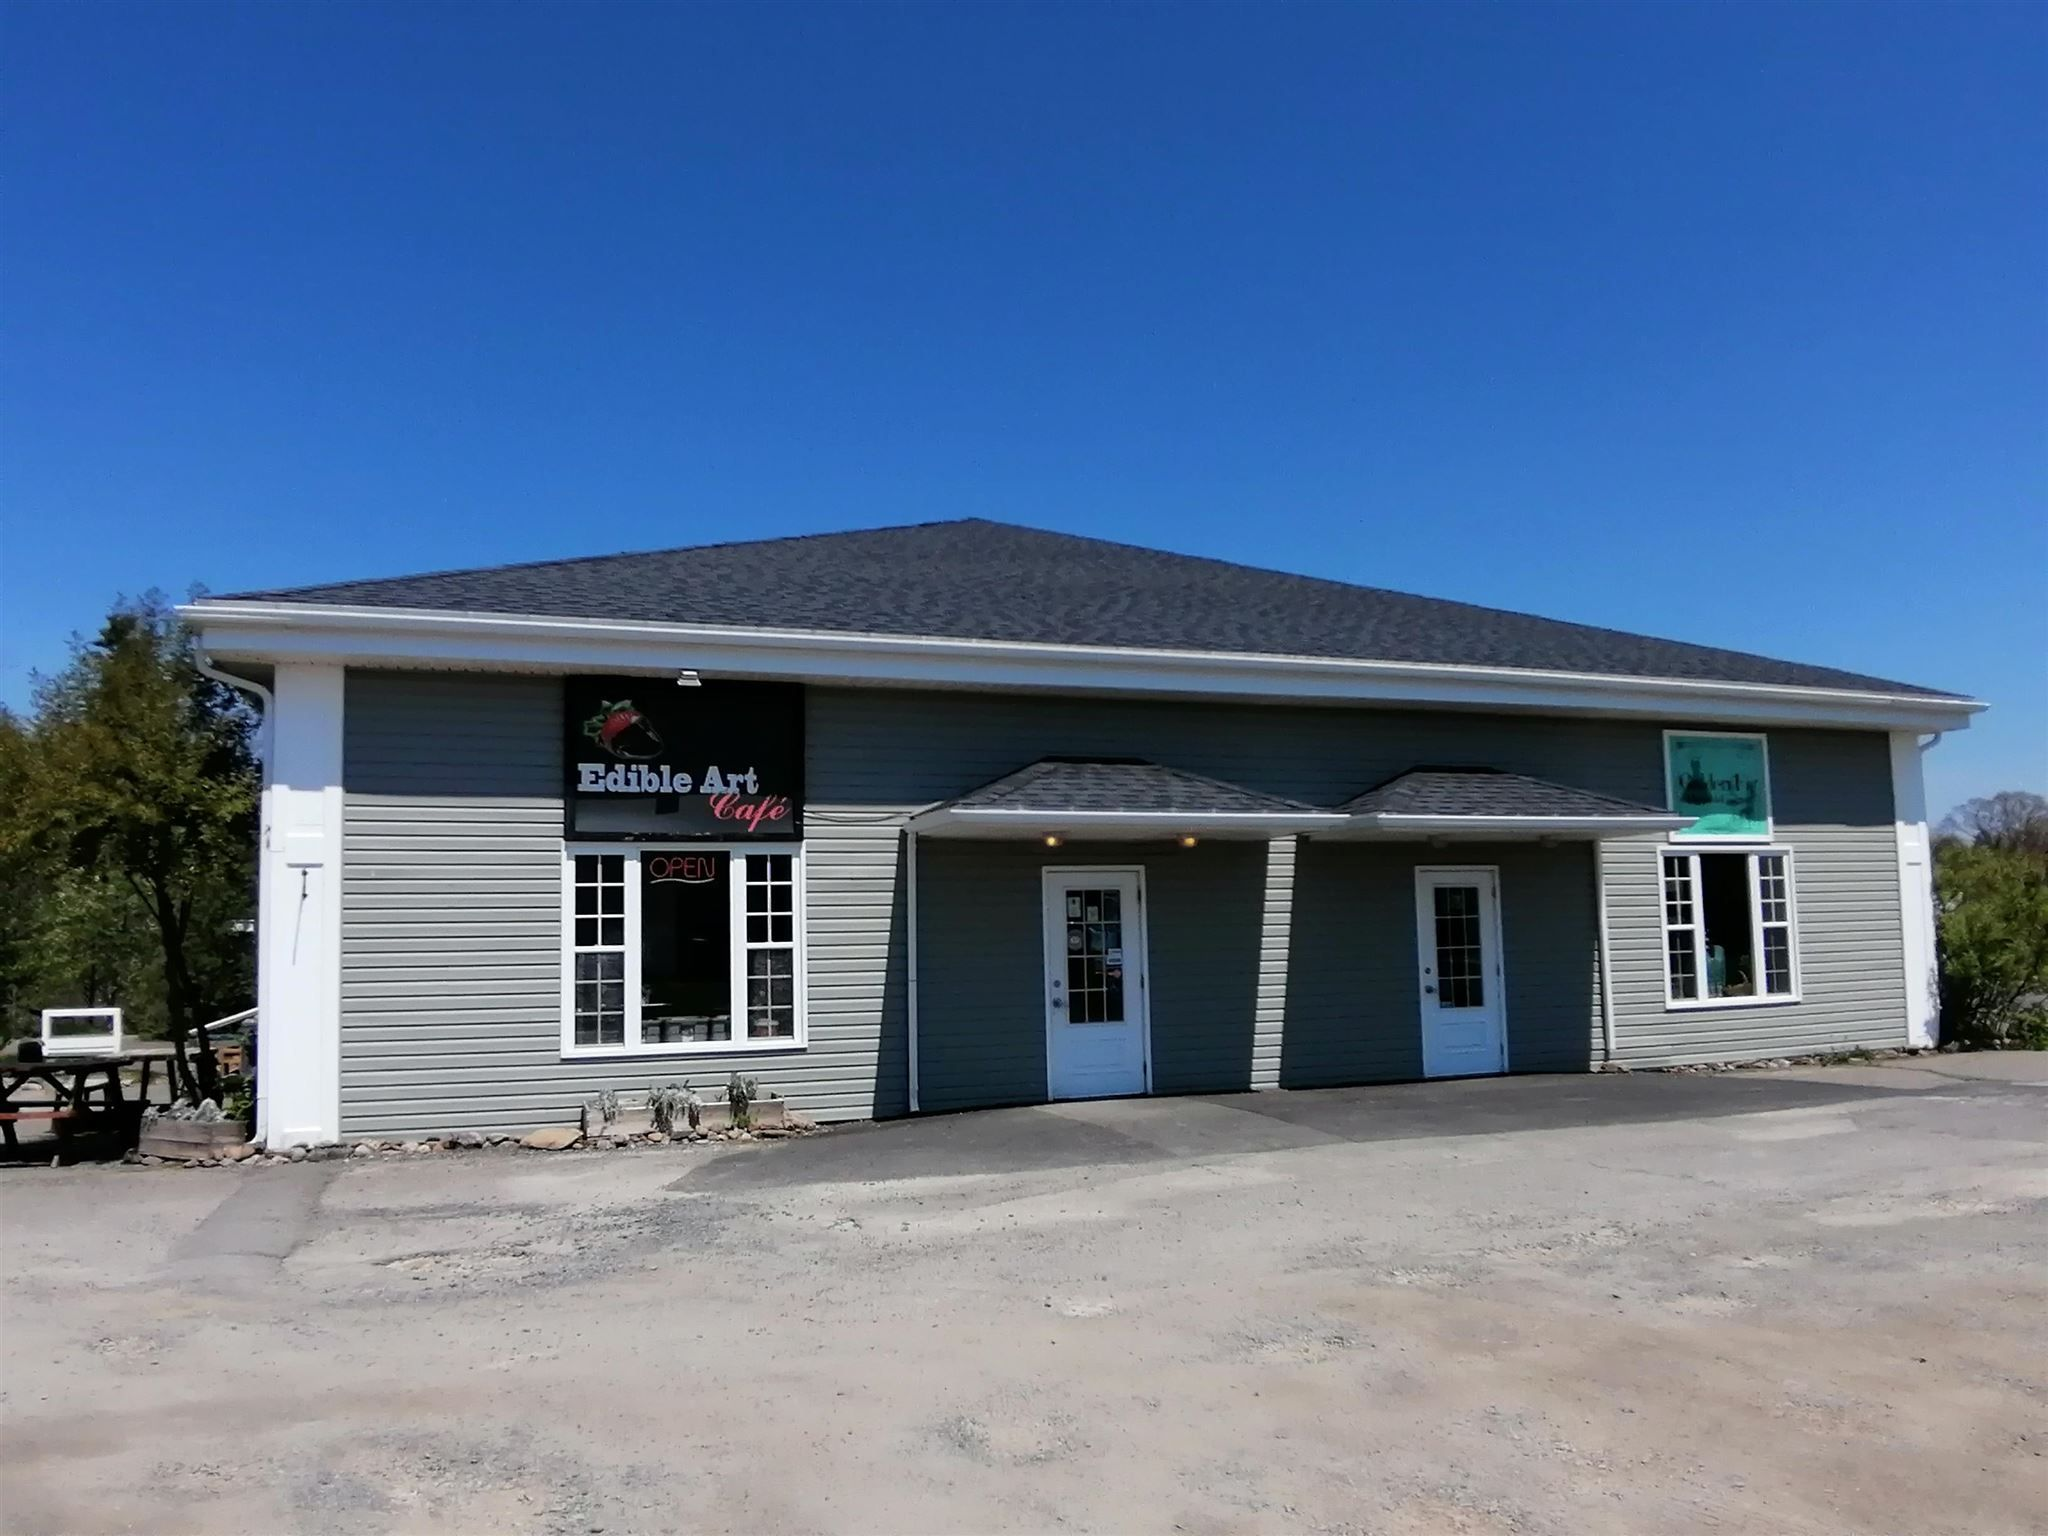 Main Photo: 9701 Commercial Street in New Minas: 404-Kings County Residential for sale (Annapolis Valley)  : MLS®# 202104669